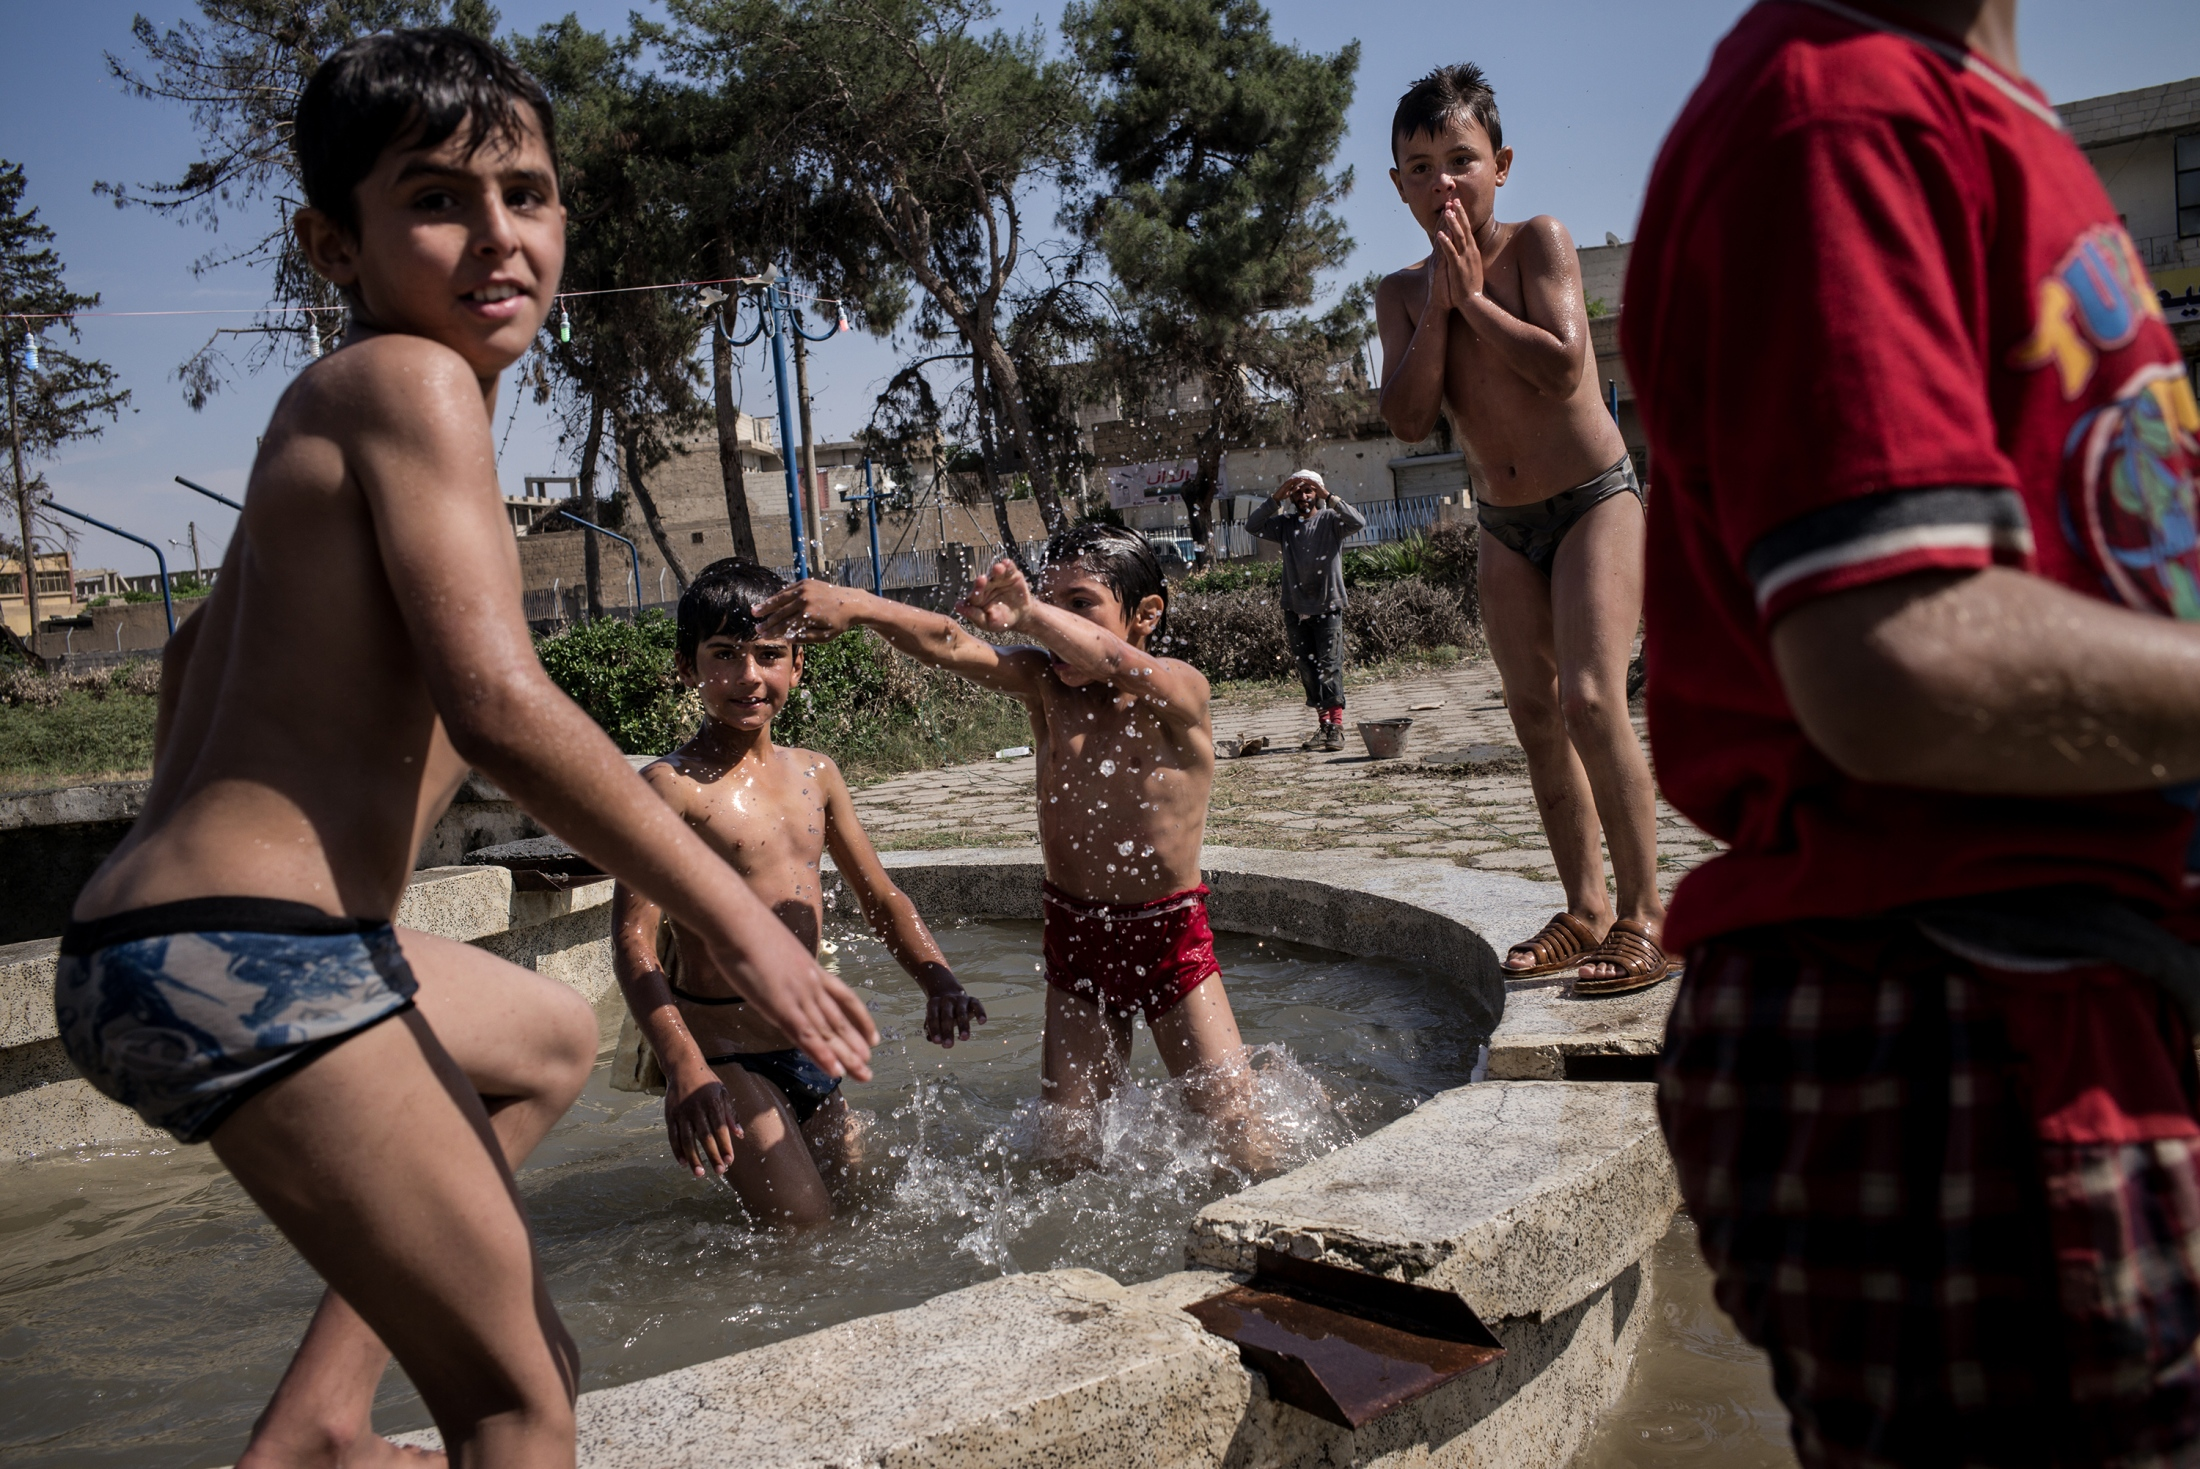 Young boys swim and play in a fountain in a park in Raqqa, Syria, on Friday, May 11, 2018. Public parks in Raqqa were used as impromptu burial sites for those killed in executions carried out by ISIS during their reign, or airstrikes by the coalition during the offensive to oust the extremist group from the capital of their so-called caliphate. Many parks still contain the remains of hundreds of people, as well as unexploded ordinance. But as life comes back to this eastern Syrian city, rather than be deterred, civilians are eager to have some semblance of normal life and enjoy their freedom outdoors.